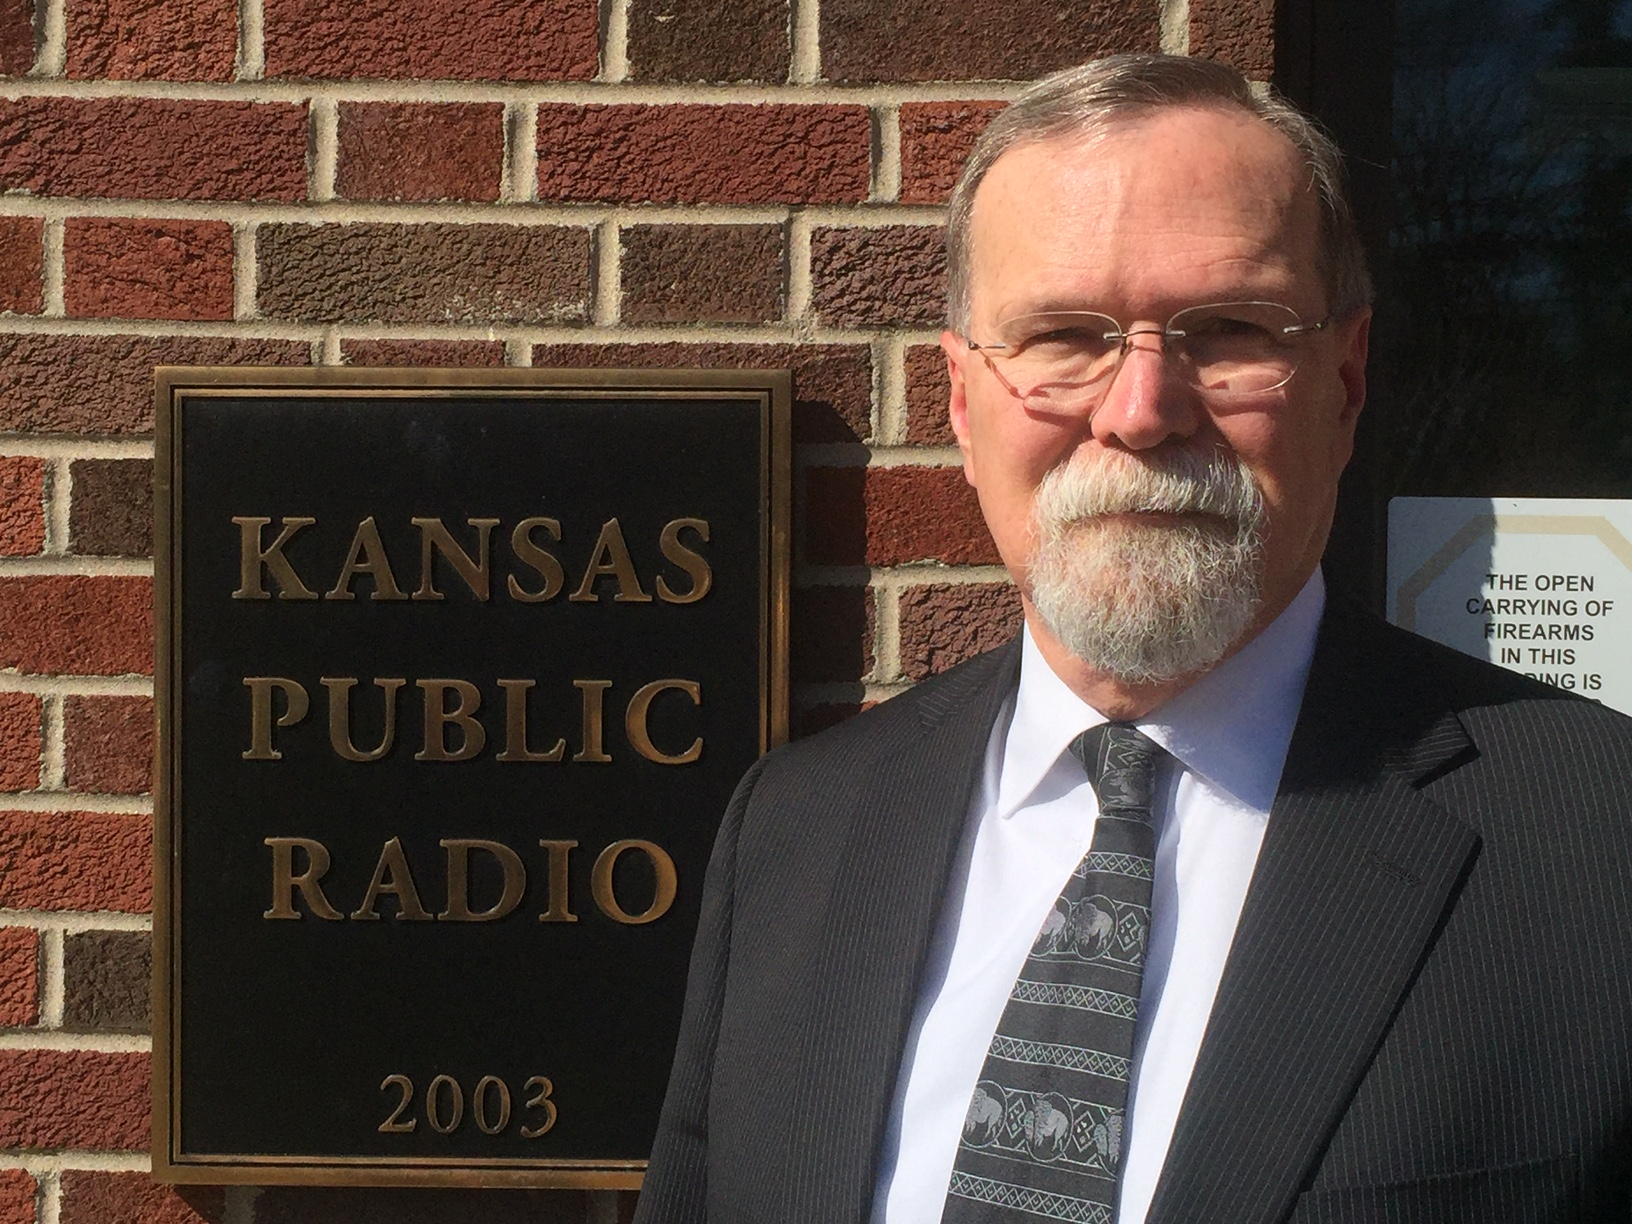 Kansas Supreme Court Chief Justice Lawton Nuss, outside the KPR studios in Lawrence. (Photo by J. Schafer)